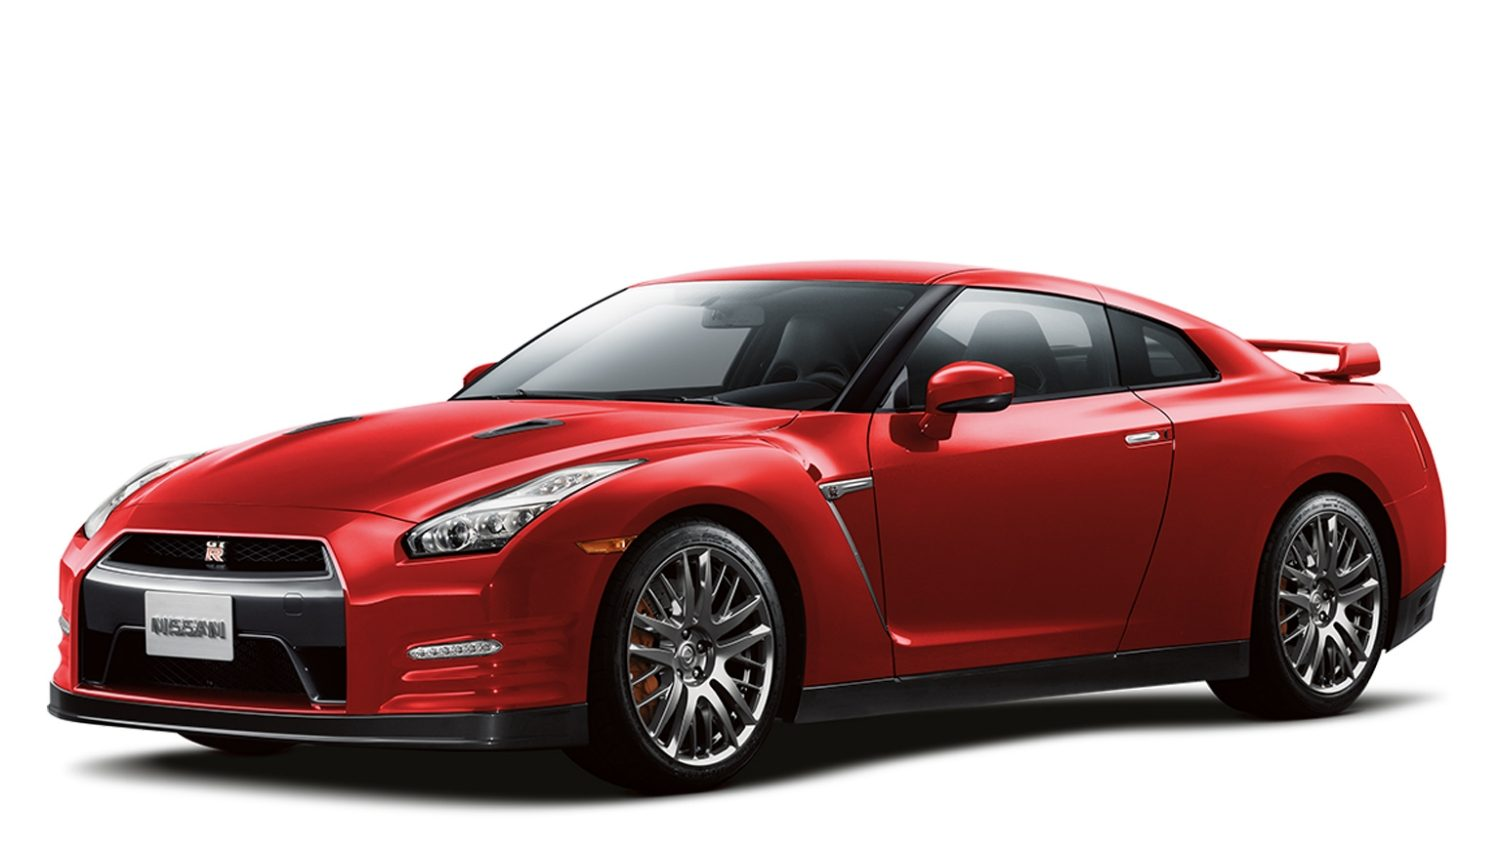 The New Nissan GT-R